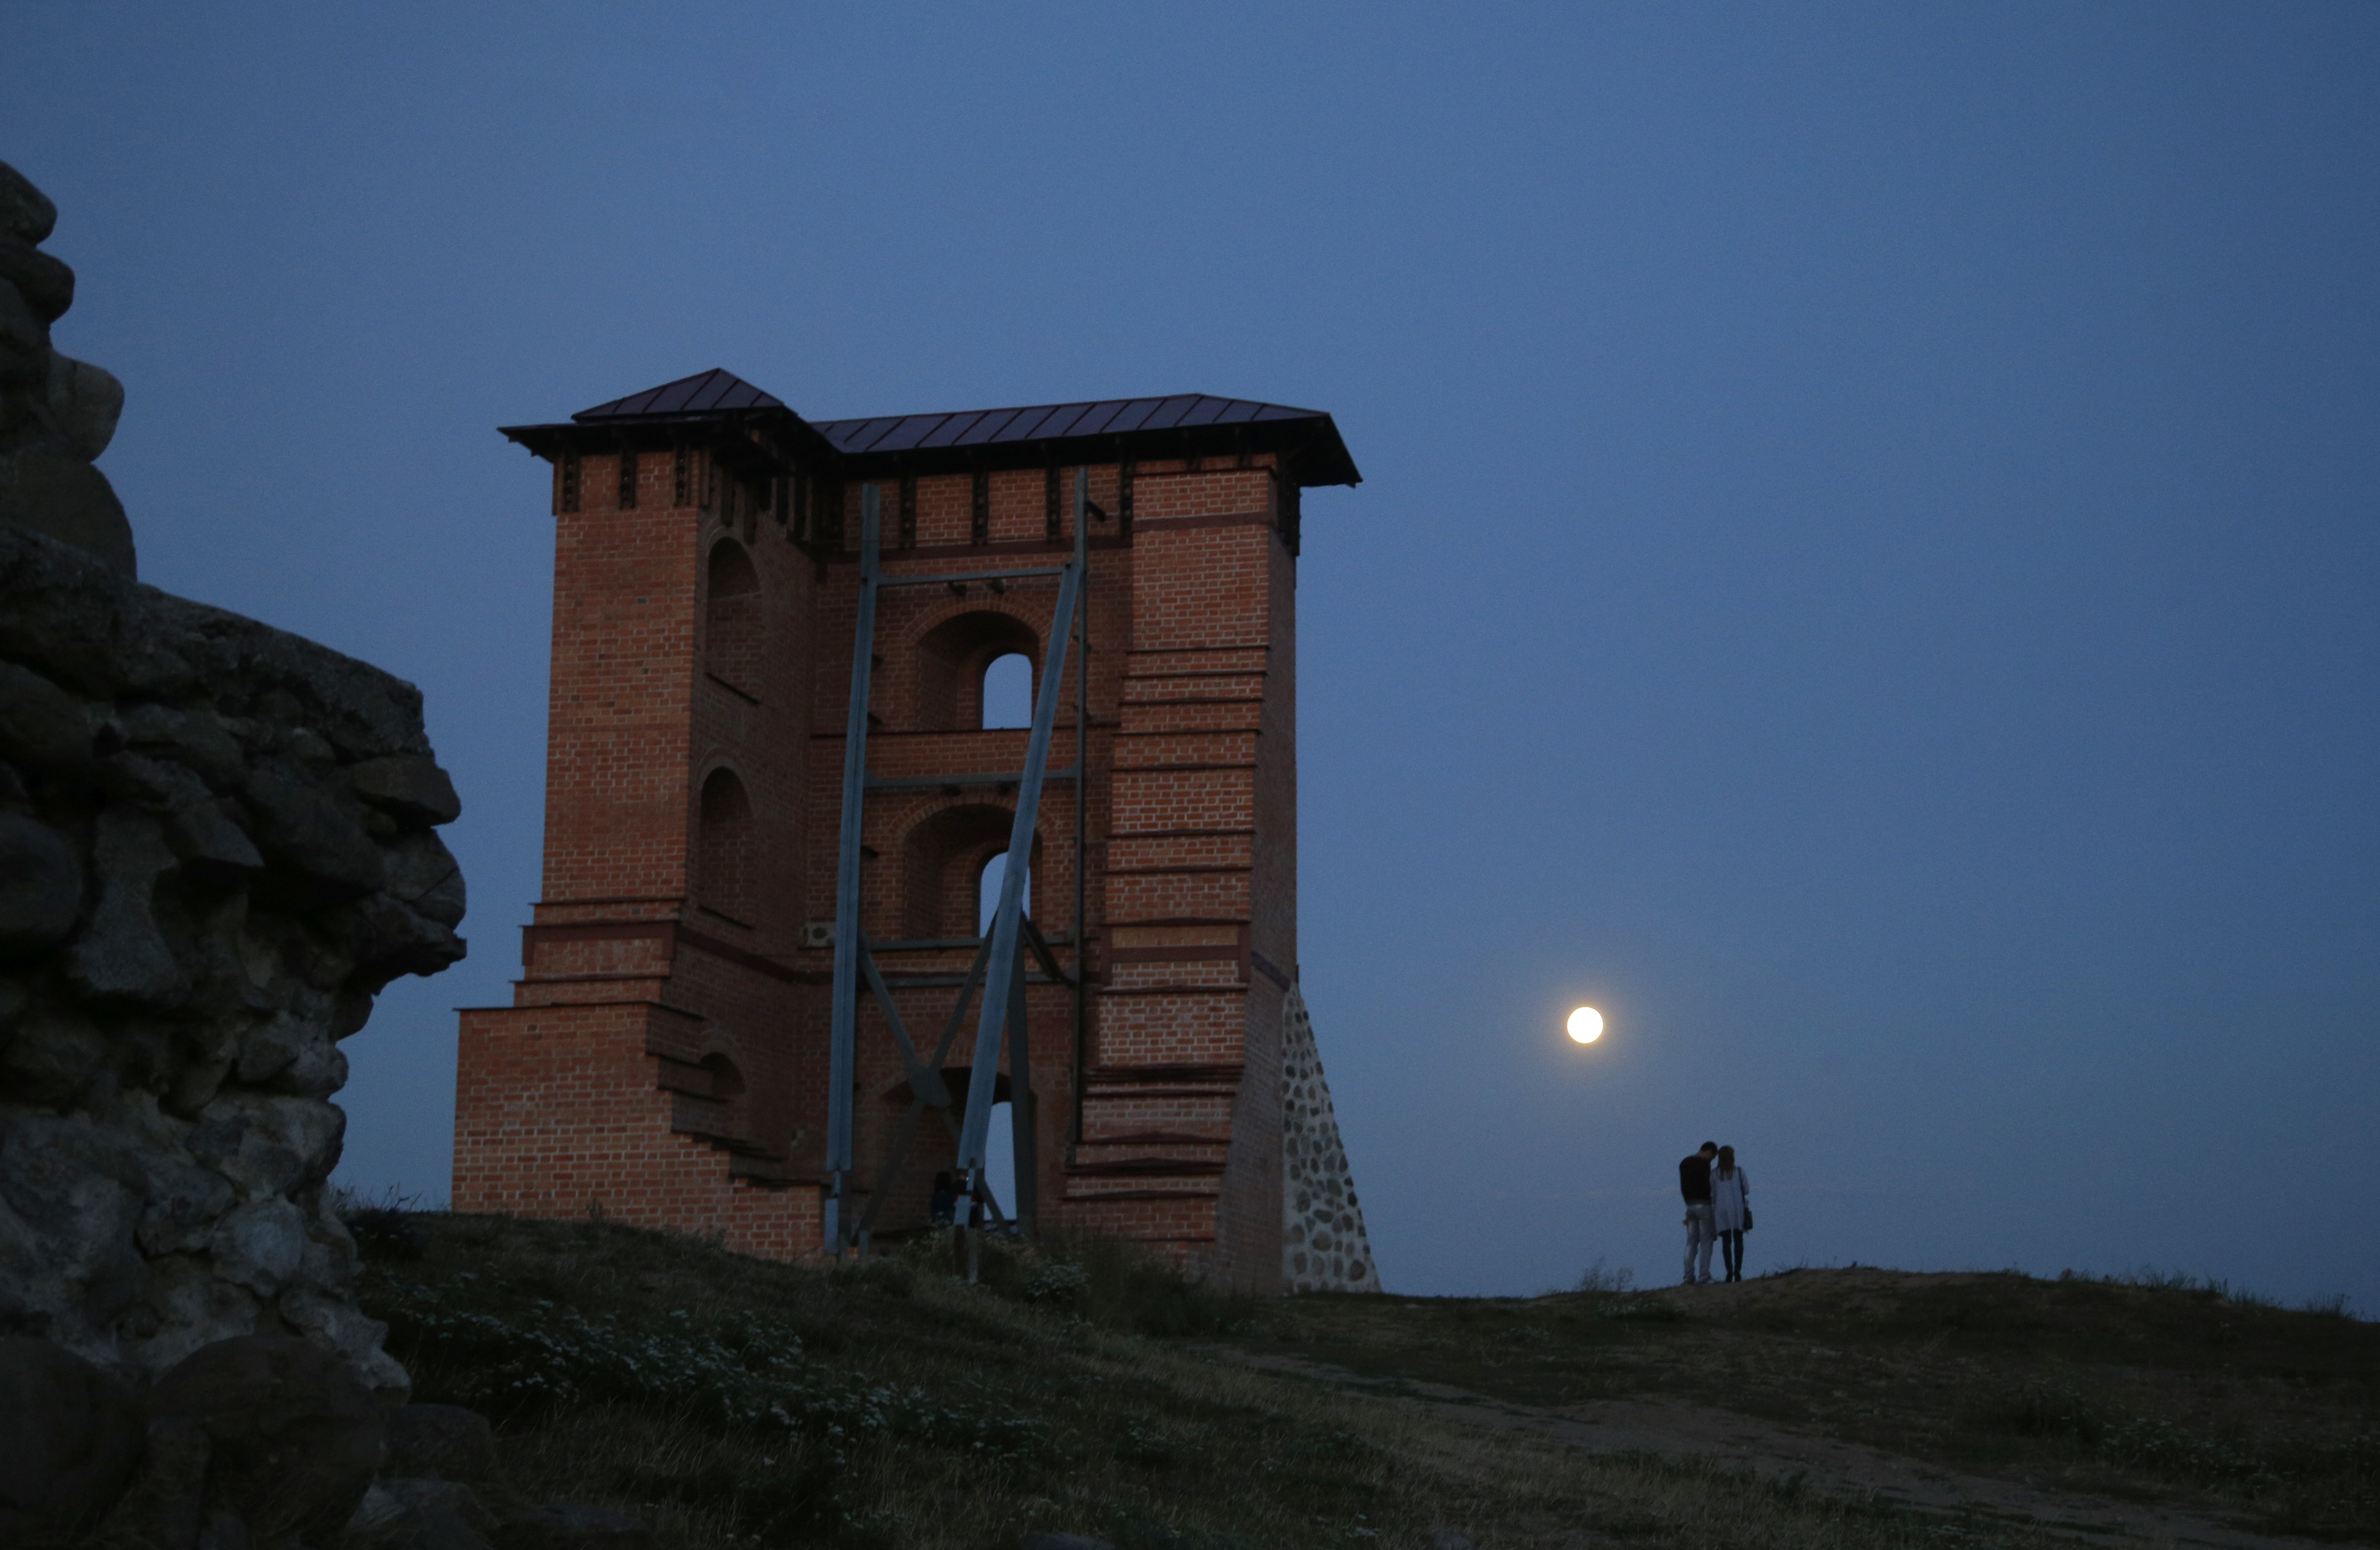 A perigee moon, also known as a super moon, rises above the remains of a medieval fortress in the town of Novogrudok, Belarus on Aug. 29, 2015.